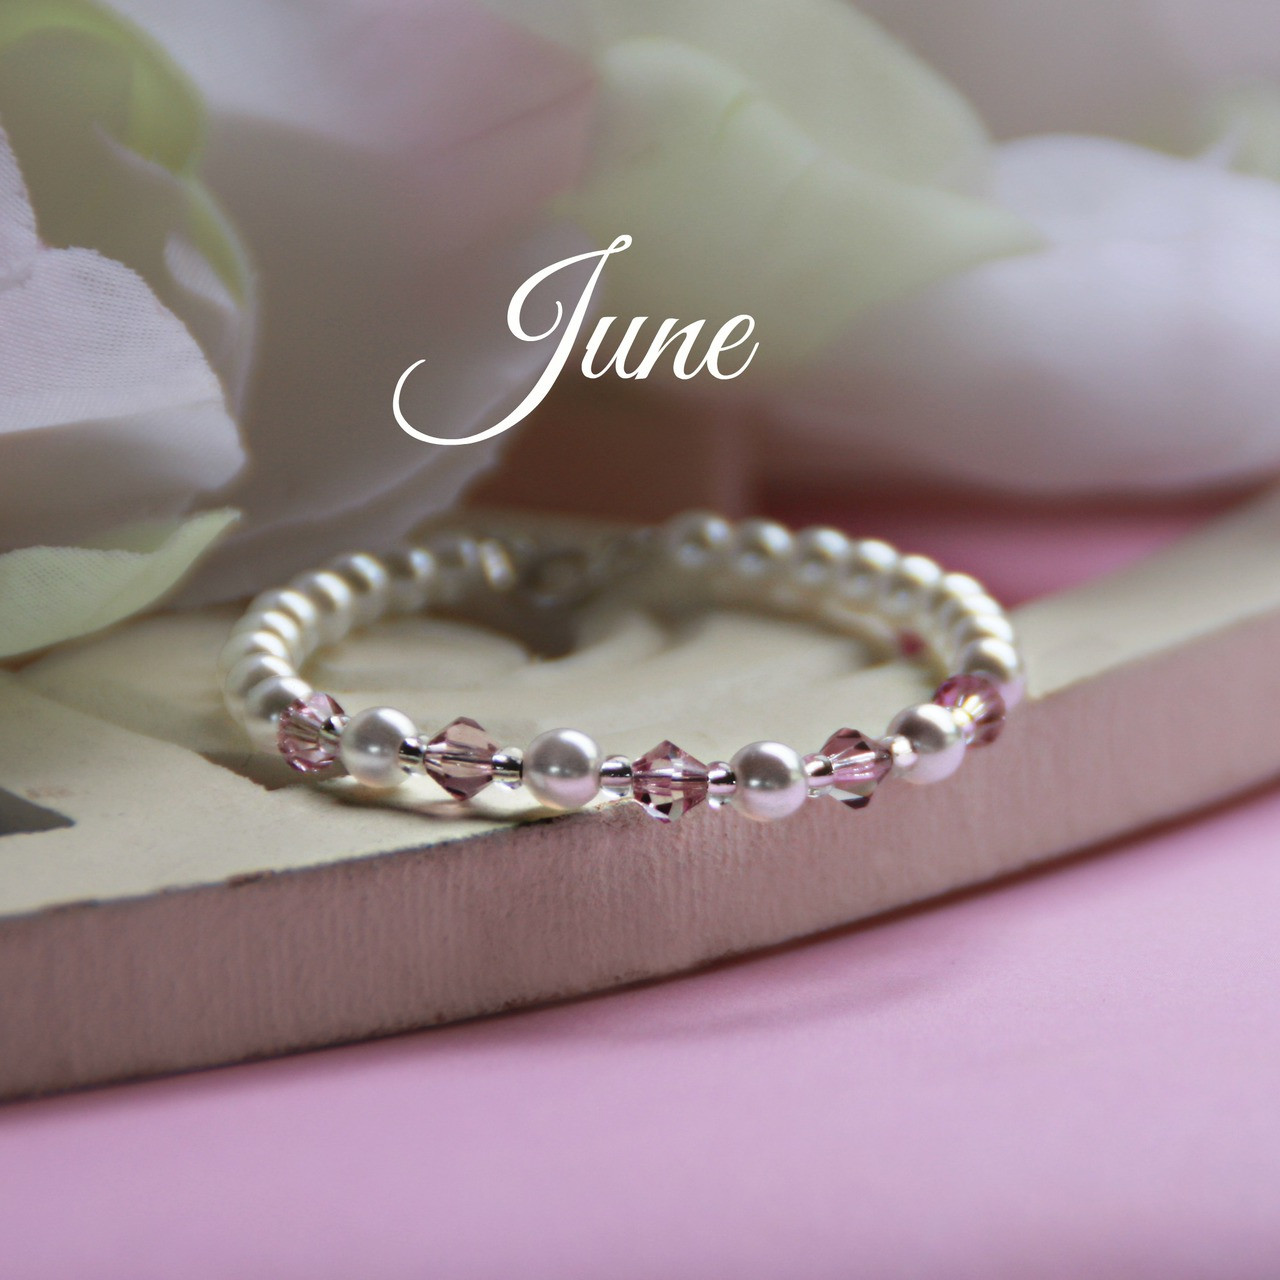 CJ-134  June Birthstone Bracelet 5""